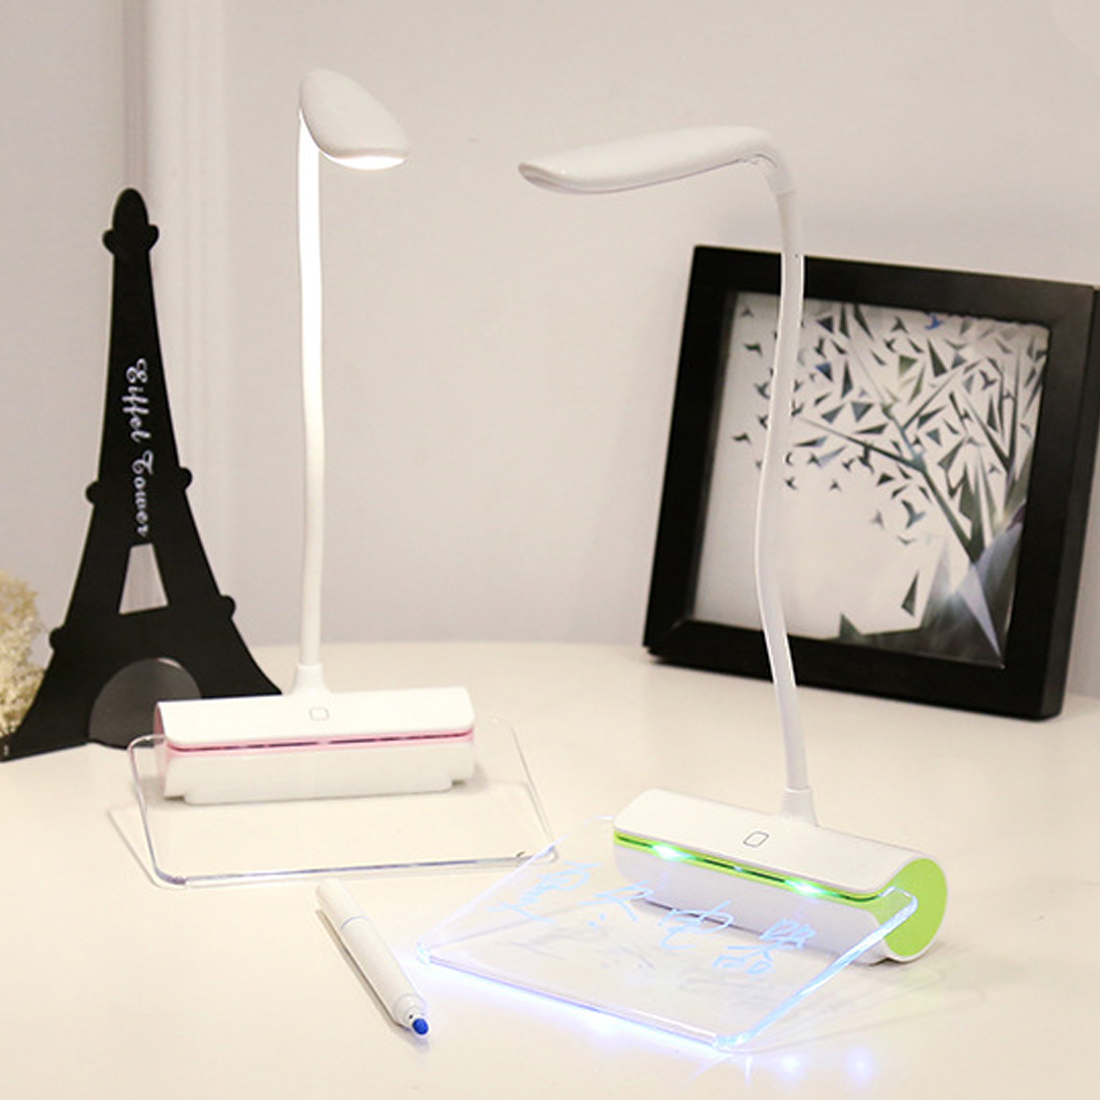 US $13 24 14% OFF New Design 1 5W Rechargeable Table Lamp LED Light Switch  USB charging fluorescent message board touch night light -in Night Lights